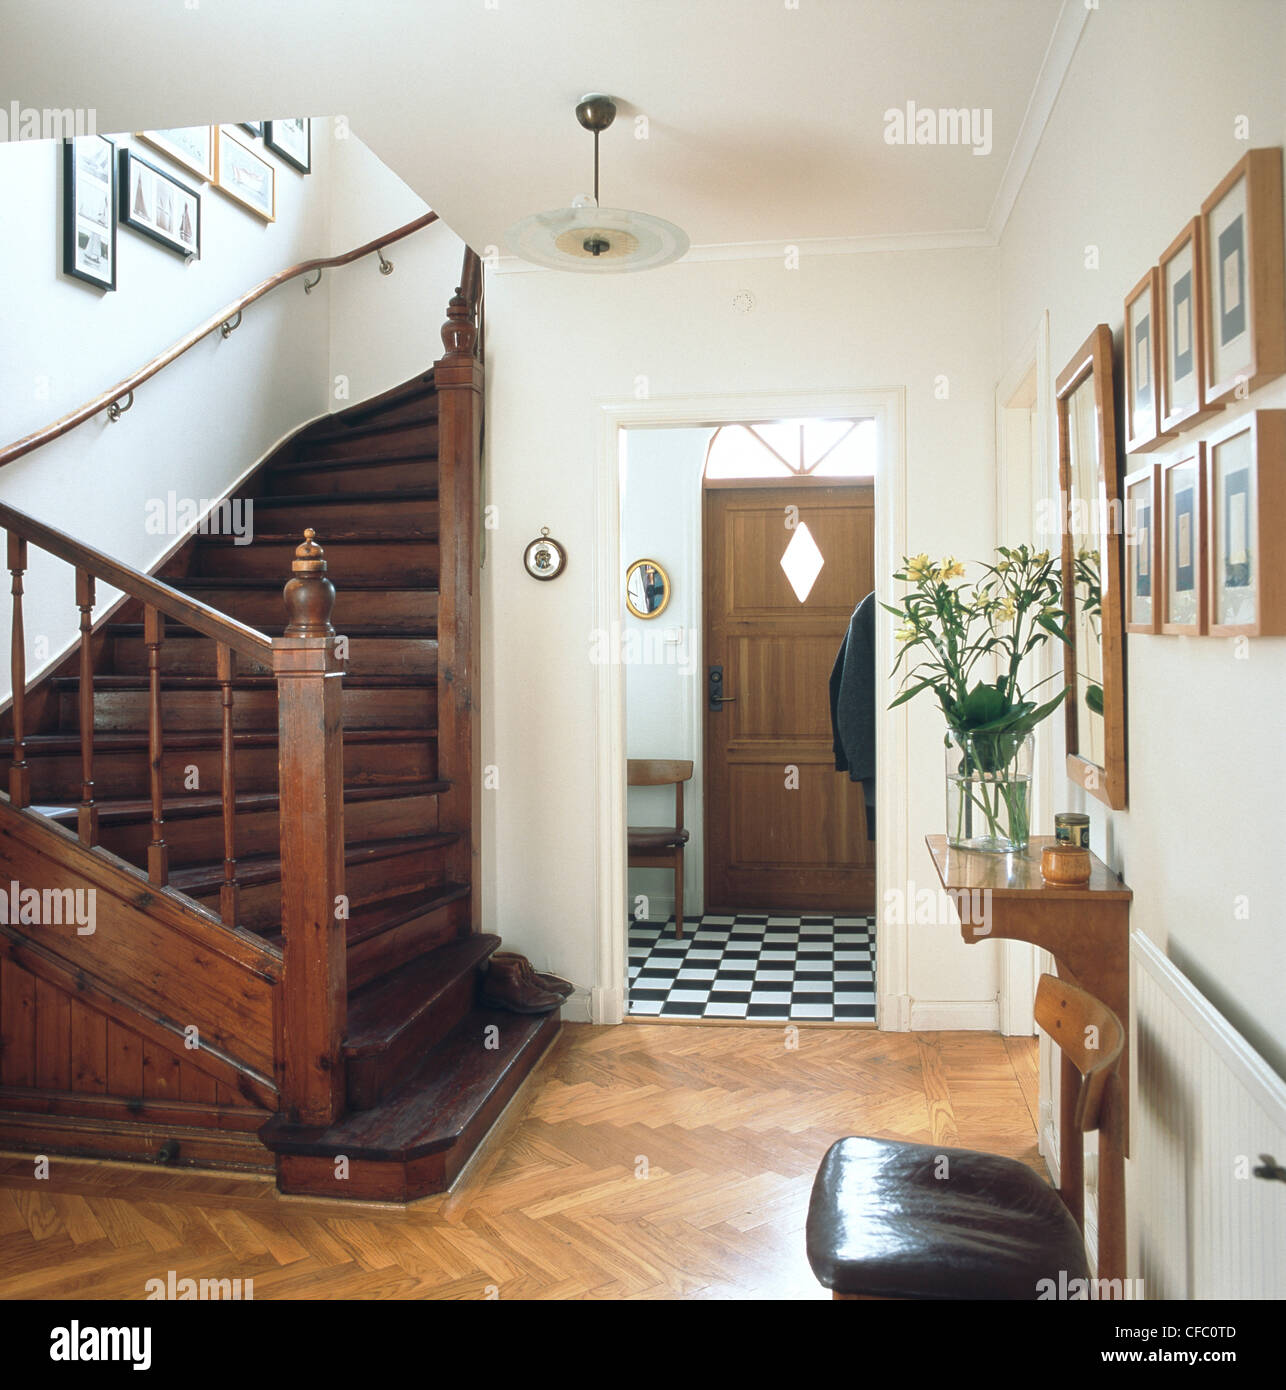 Hallway curved wooden staircase parquet flooring and black and hallway curved wooden staircase parquet flooring and black and white tiles by front door magazine dailygadgetfo Choice Image